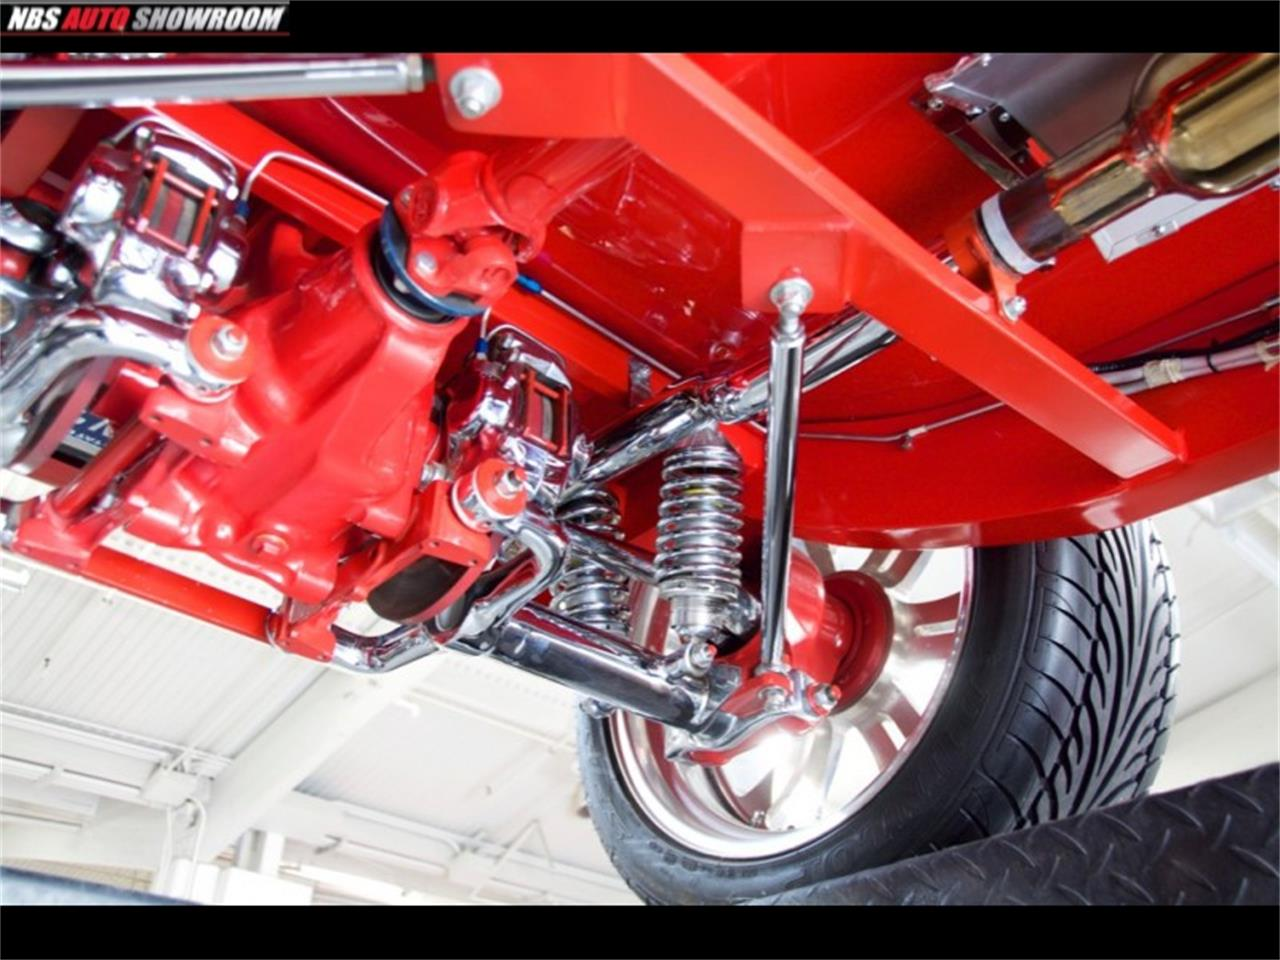 Large Picture of 1932 Ford Roadster located in California - $37,546.00 Offered by NBS Auto Showroom - QY4R